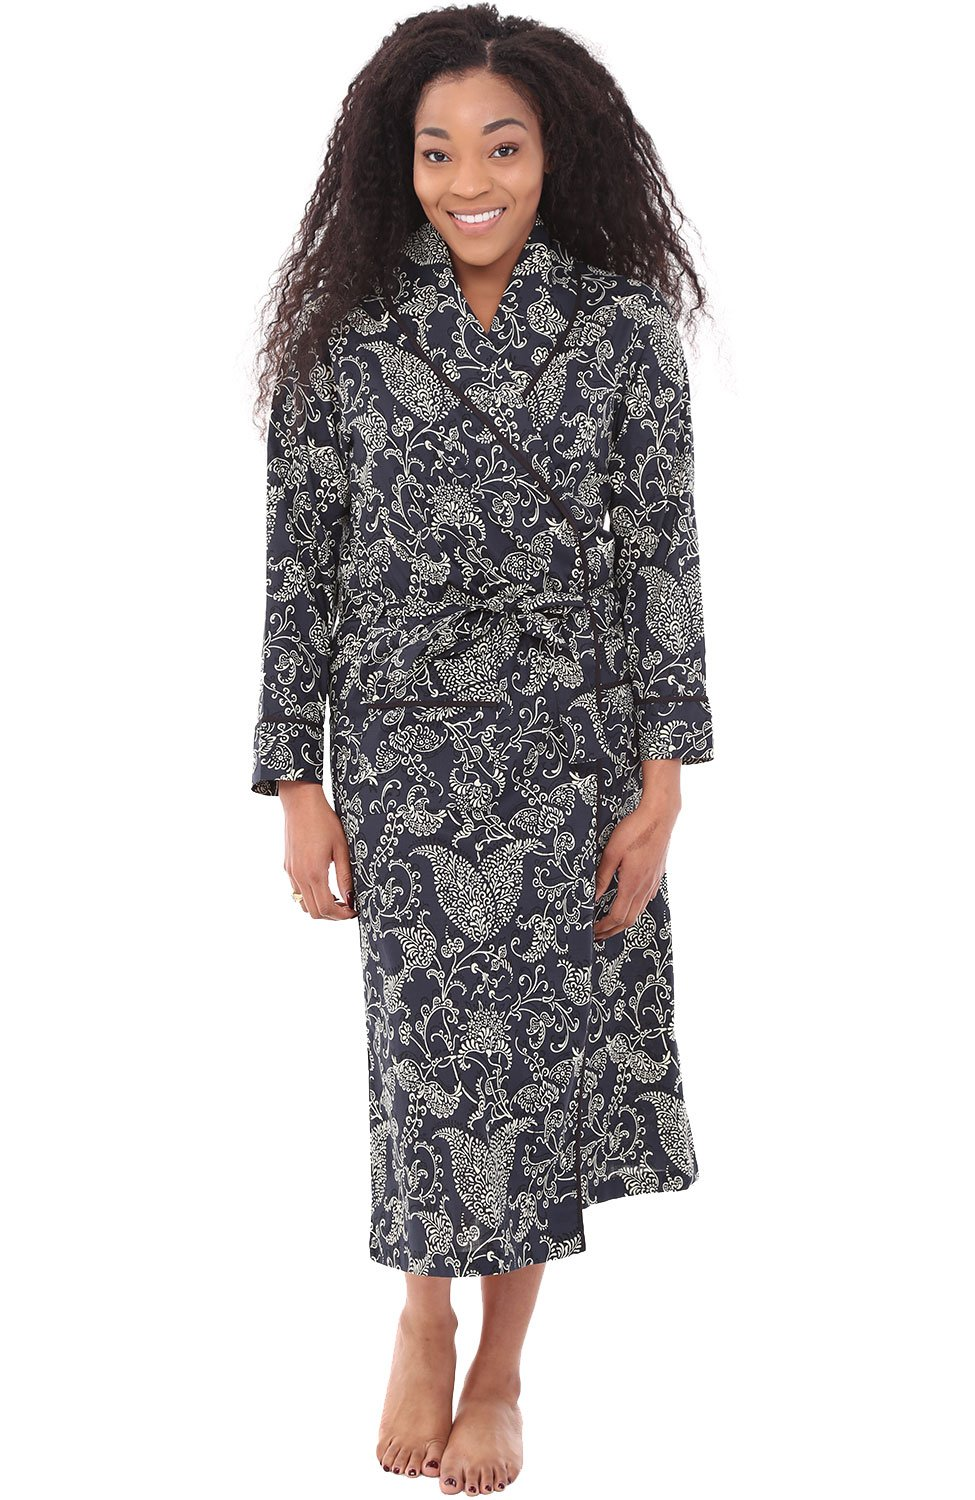 Alexander Del Rossa Womens Cotton Robe, Lightweight Woven Bathrobe, 3XL Midnight Blue Garden (A0515V743X)